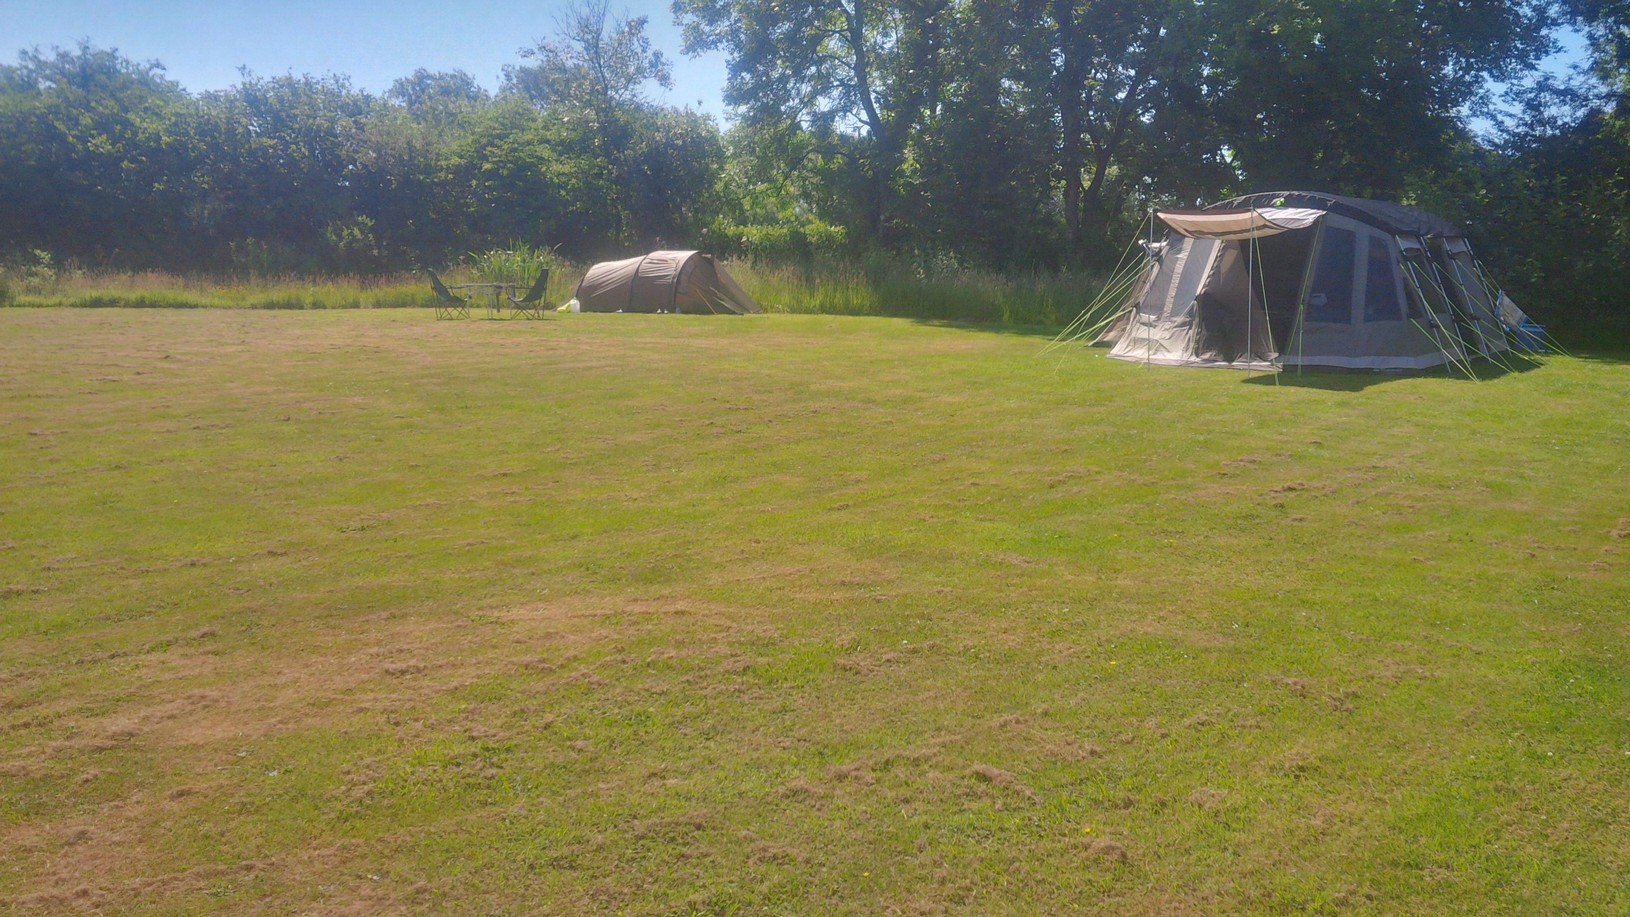 Grass tent pitches